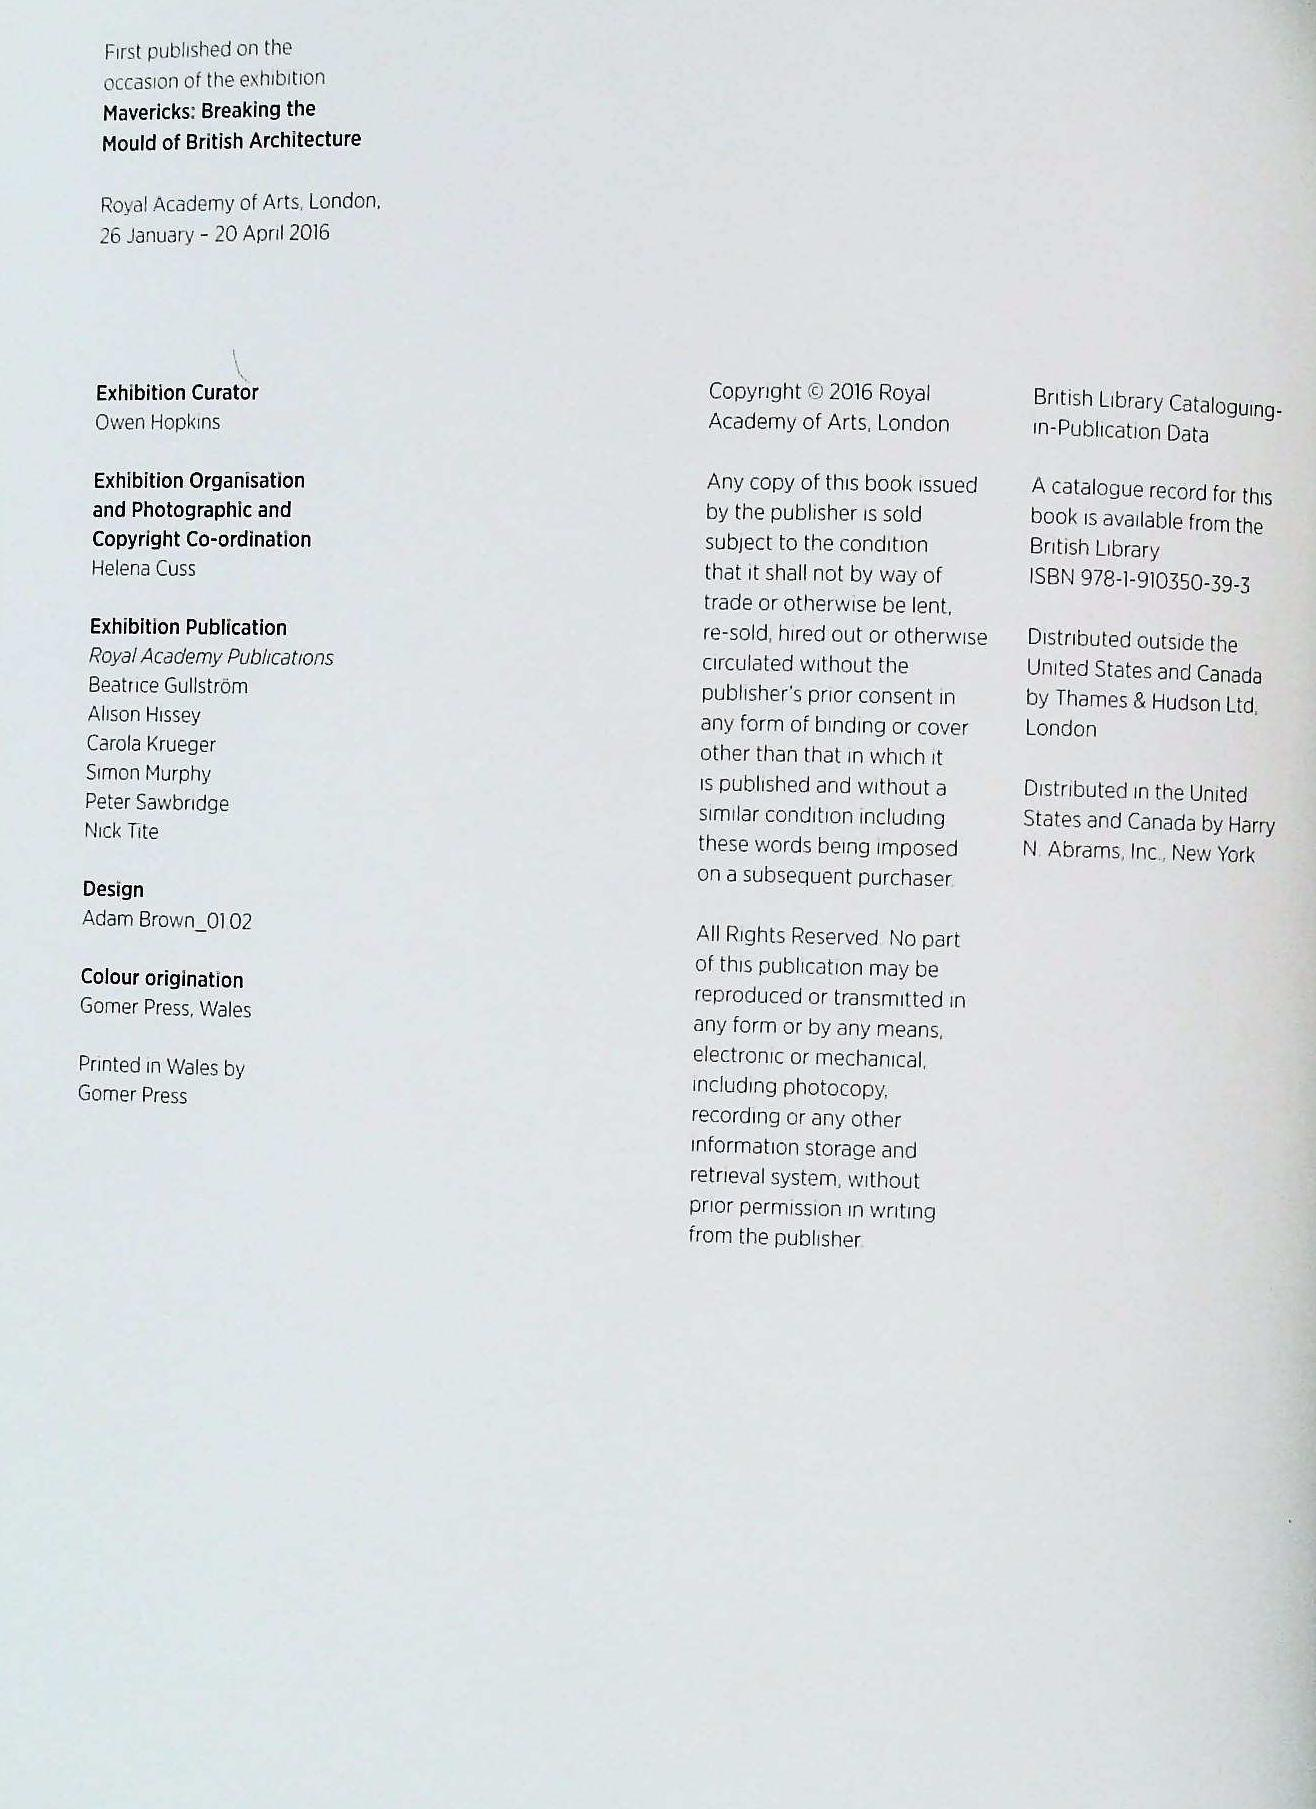 Mavericks Breaking The Mould Of British Architecture paperback book by Owen Hopkins. Published - Image 3 of 3